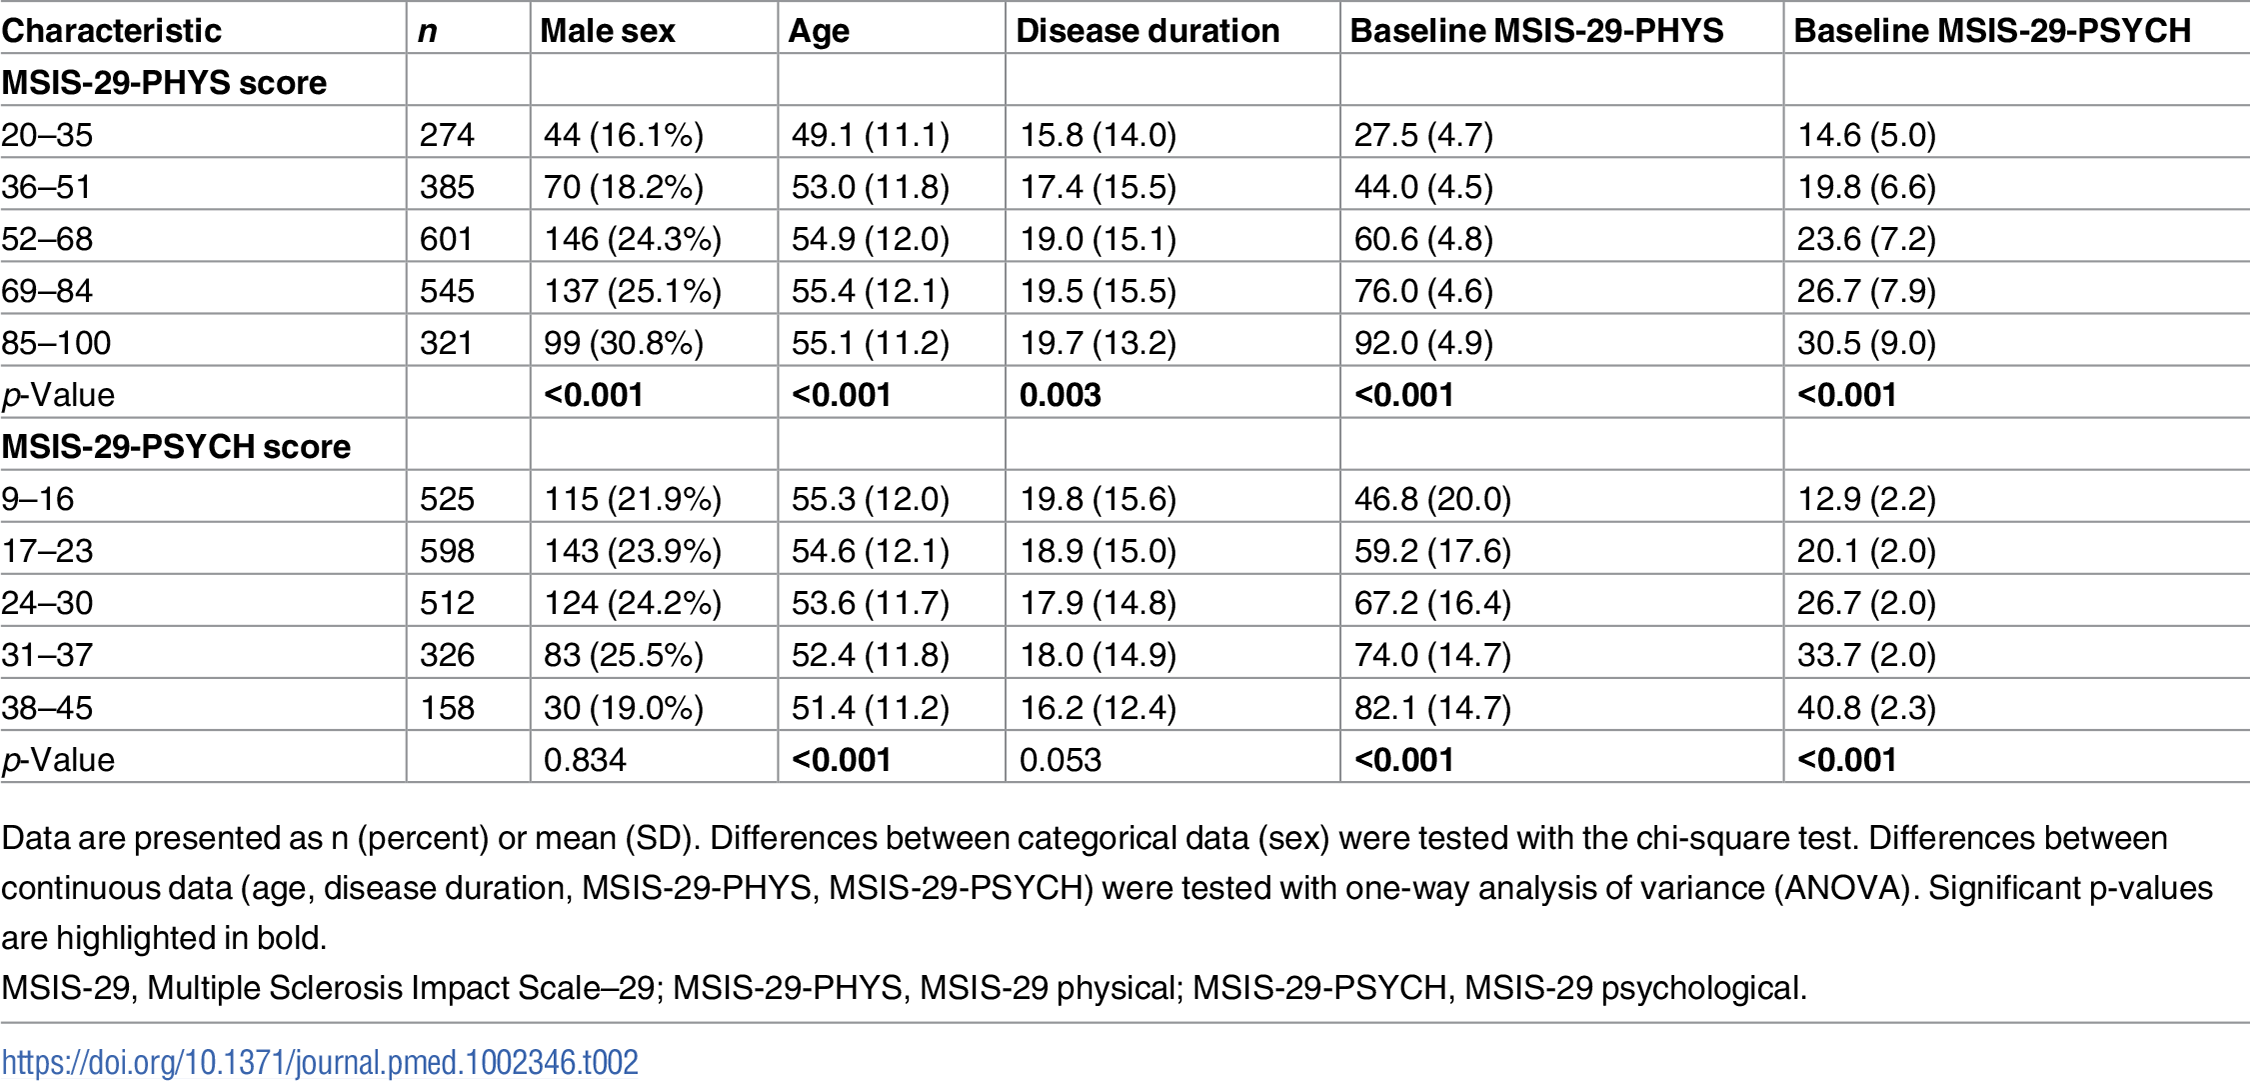 Variation in characteristics between those with different baseline MSIS-29 scores.